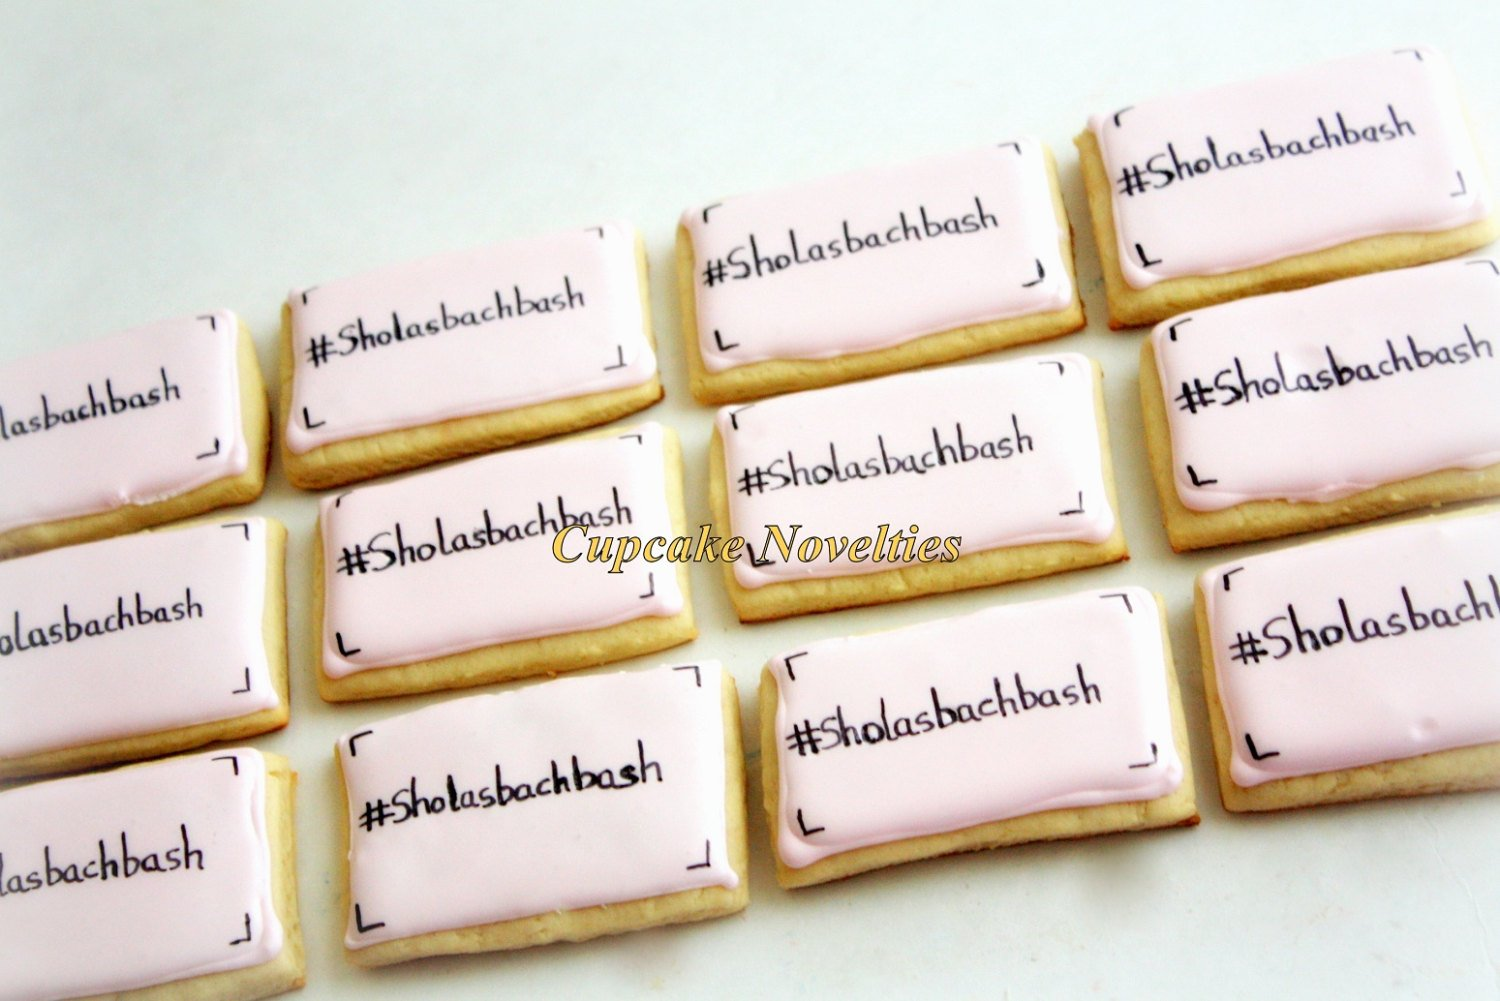 Hashtag Cookies Decorated Sugar Cookies Wedding Welcome Bags Treats Wedding Favors Corporate Logo Theme Corporate Gift Instagram Tag Cookies